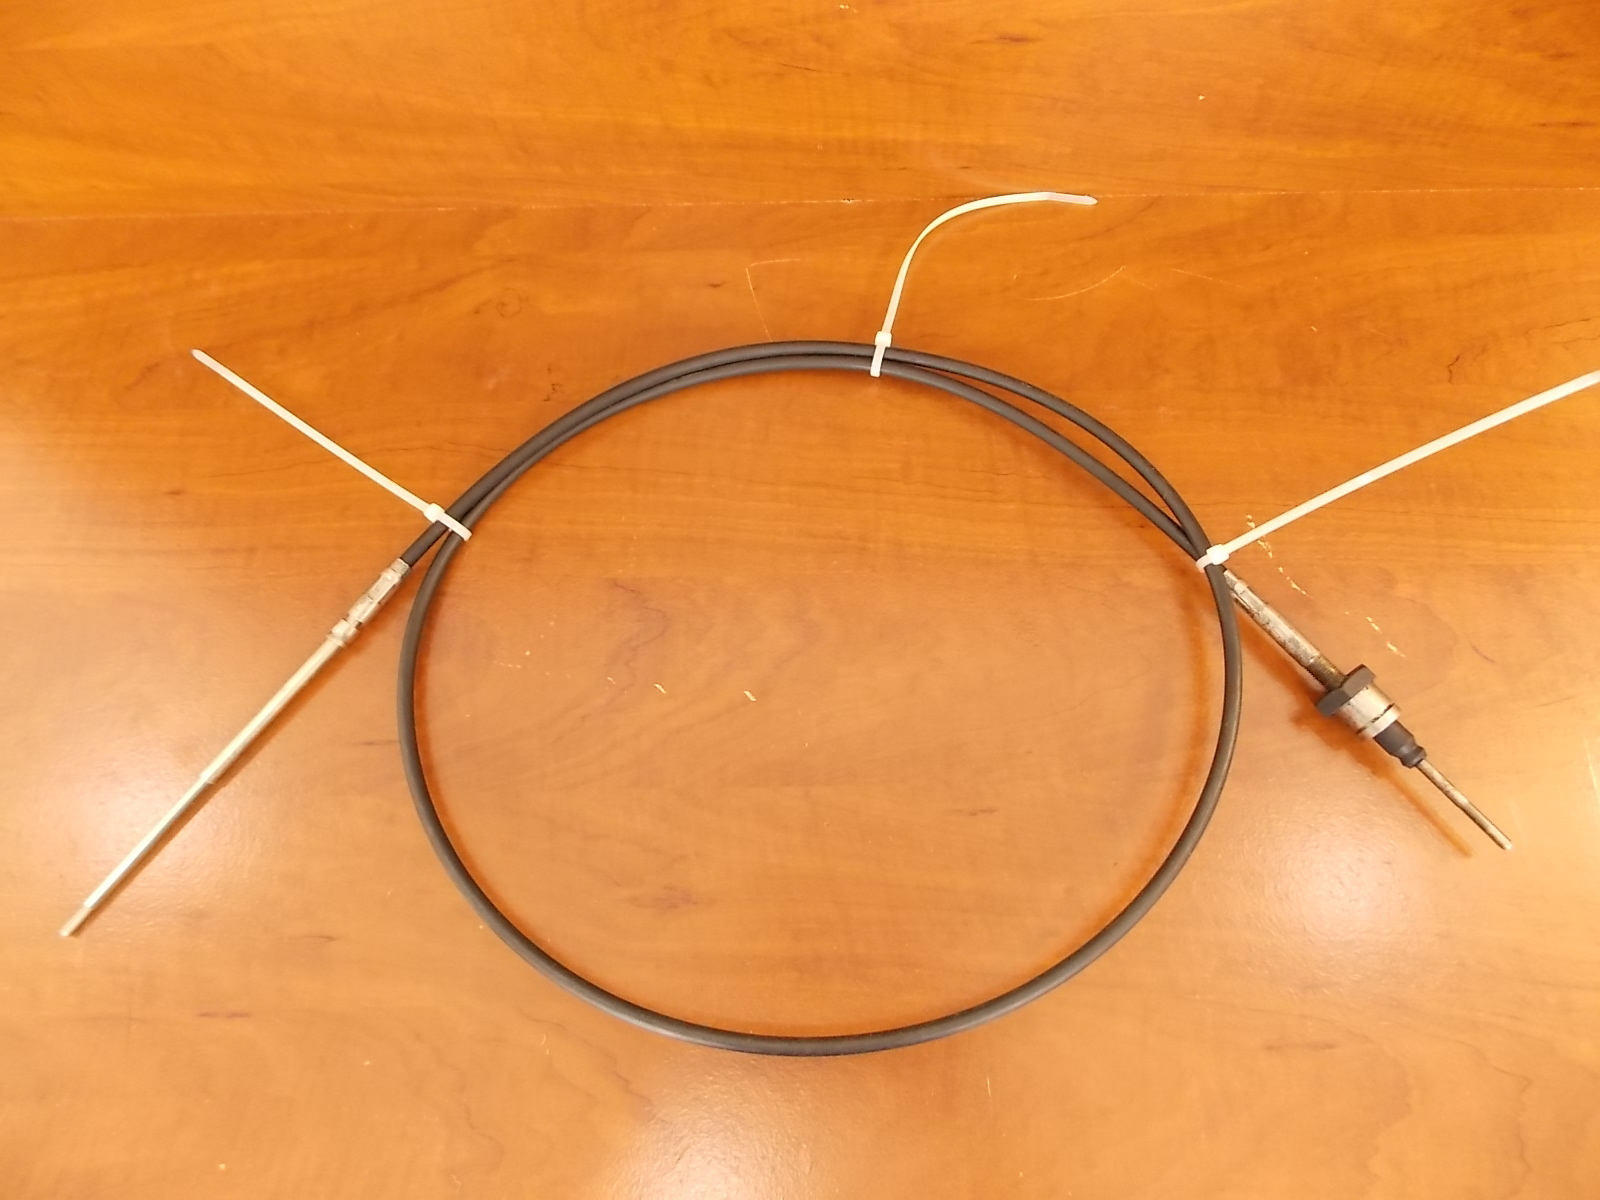 Evinrude Trolling Motor Steering Cable